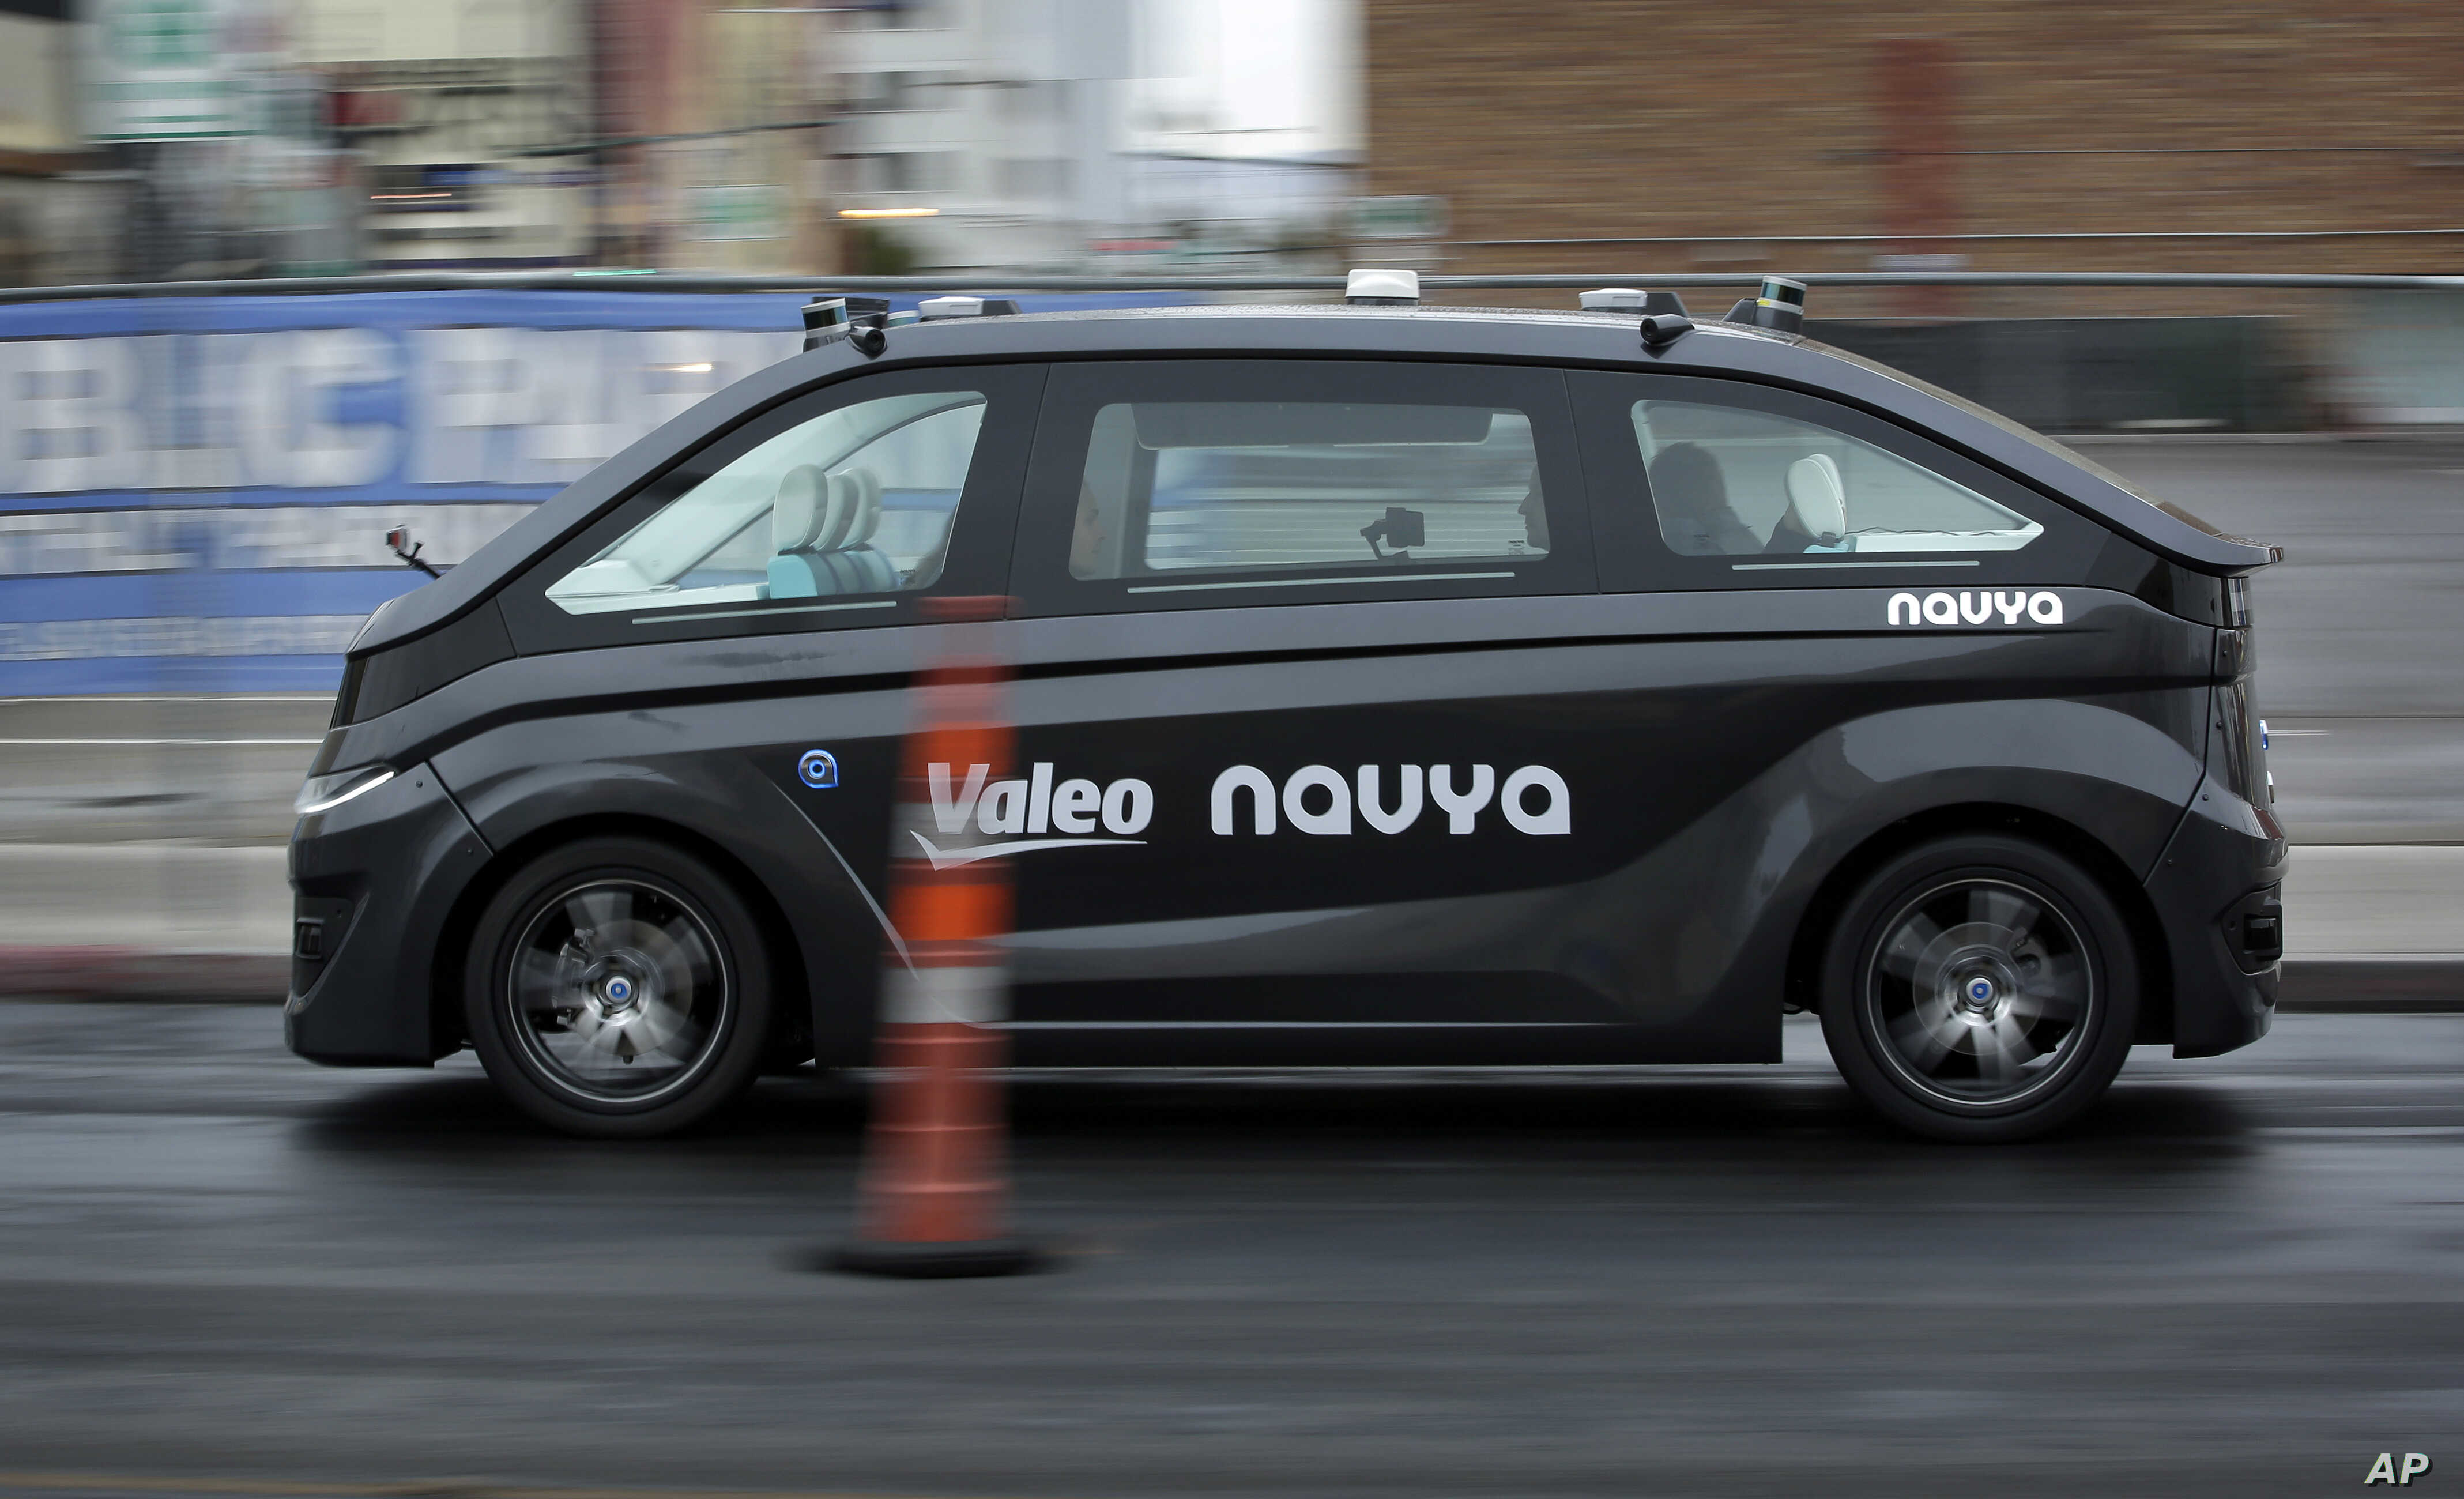 A Navya Autonom Cab, a self-driving vehicle, drives down a street during a demonstration at CES International, in Las Vegas, Nevada, Jan. 8, 2018.